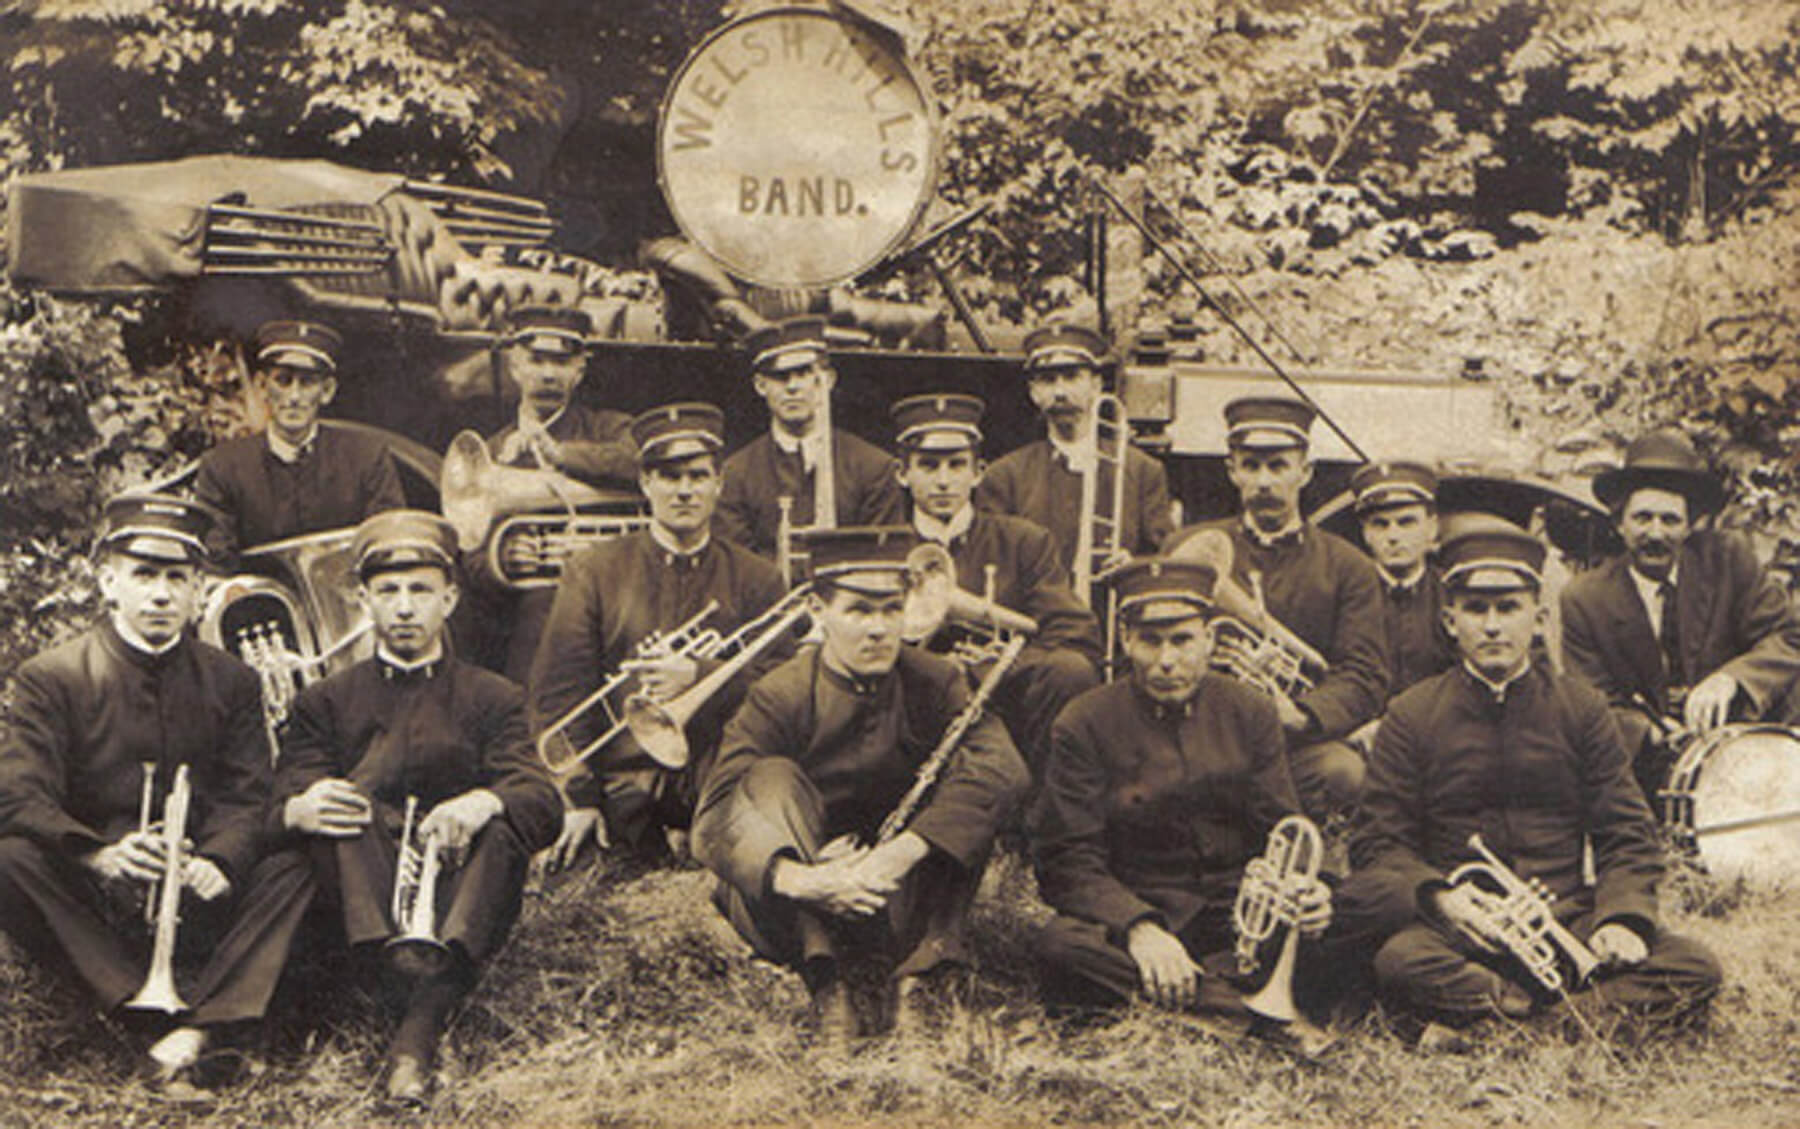 Welsh Hills Band